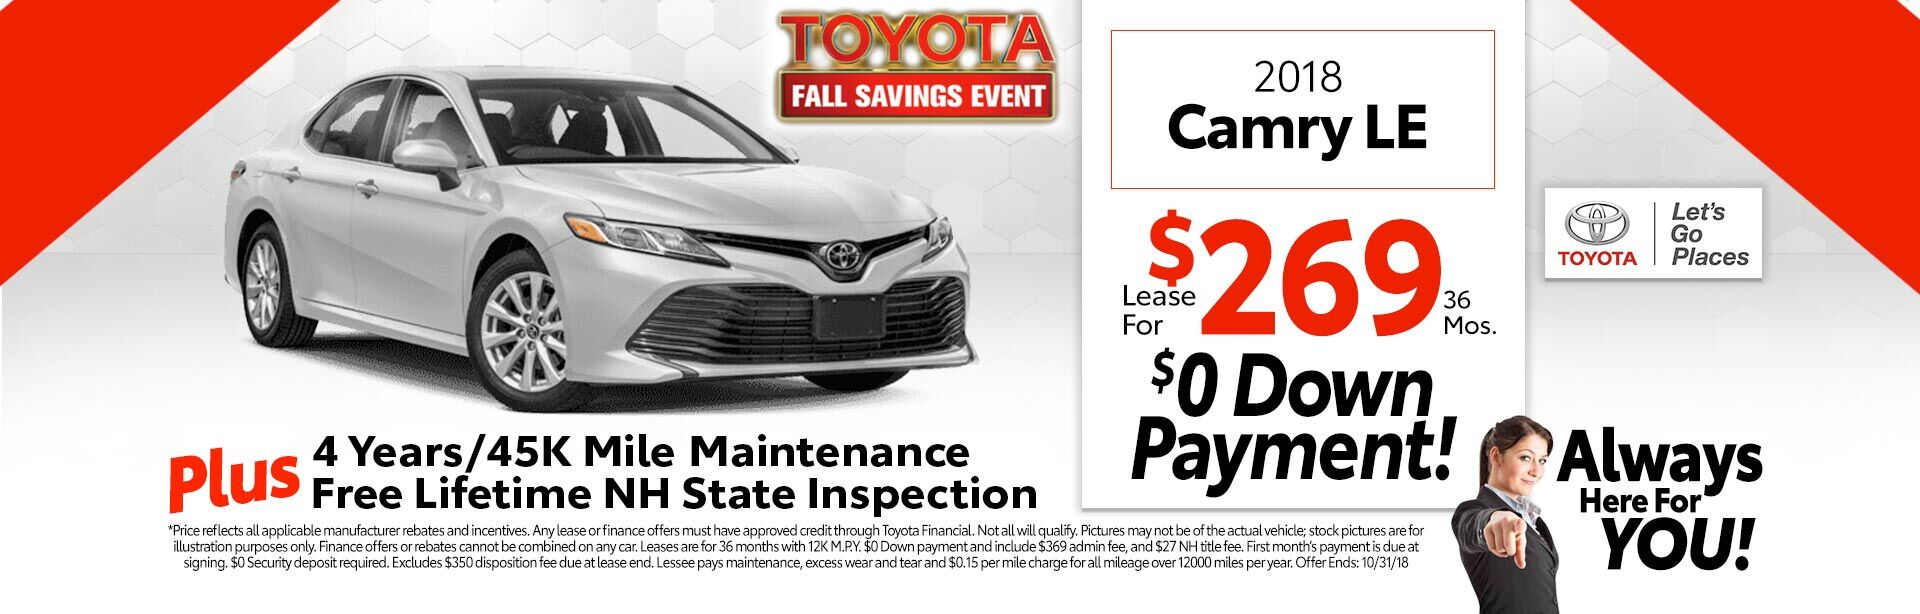 2018 Toyota Camry LE for as low as $269 a month for 36 months